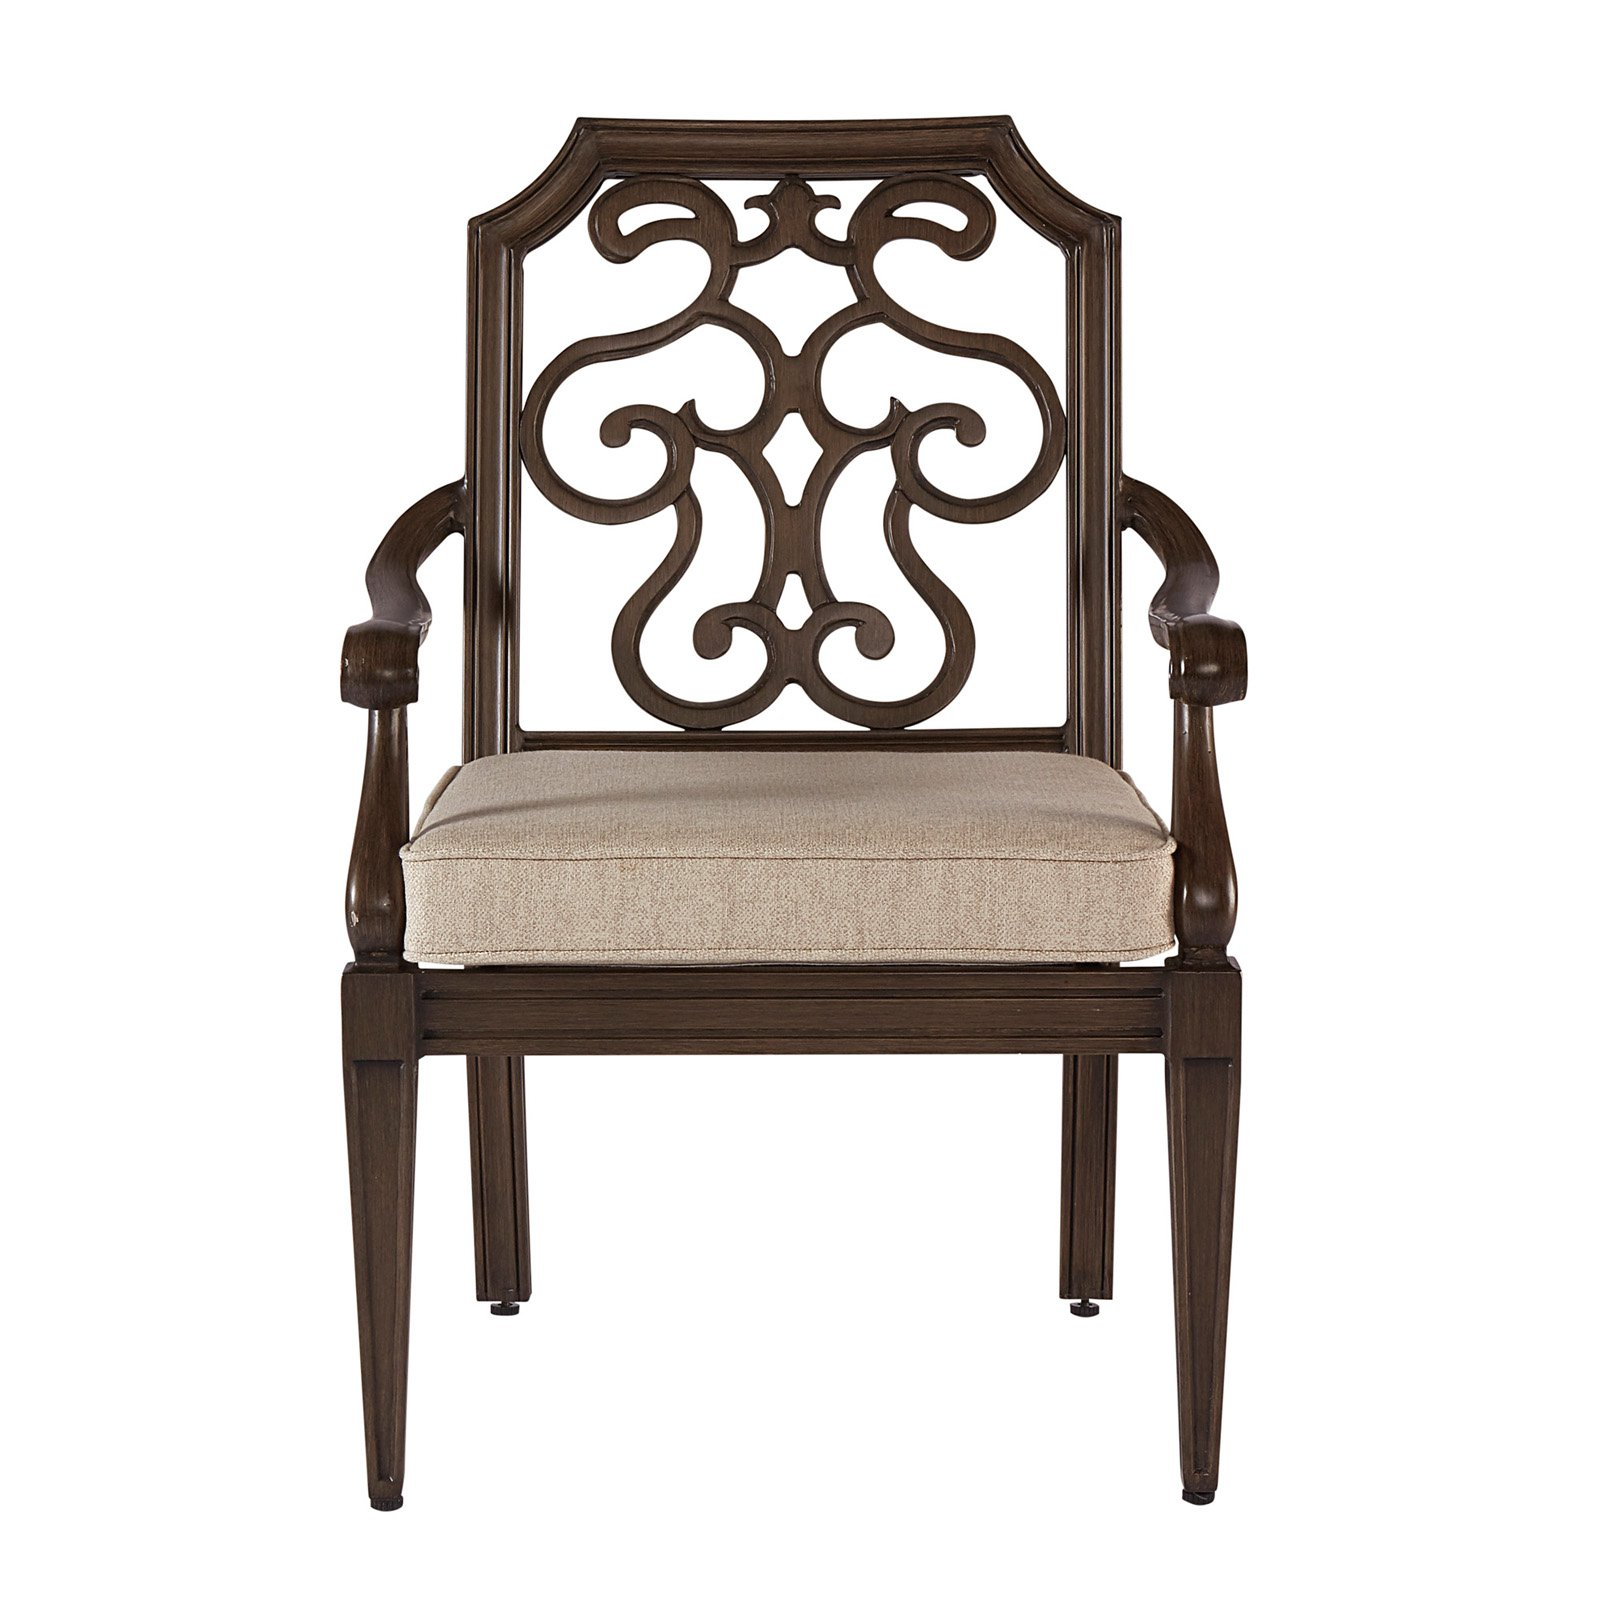 A.R.T. Furniture Arch Salvage Outdoor Gabrielle Dining Arm Chair - Set of 2